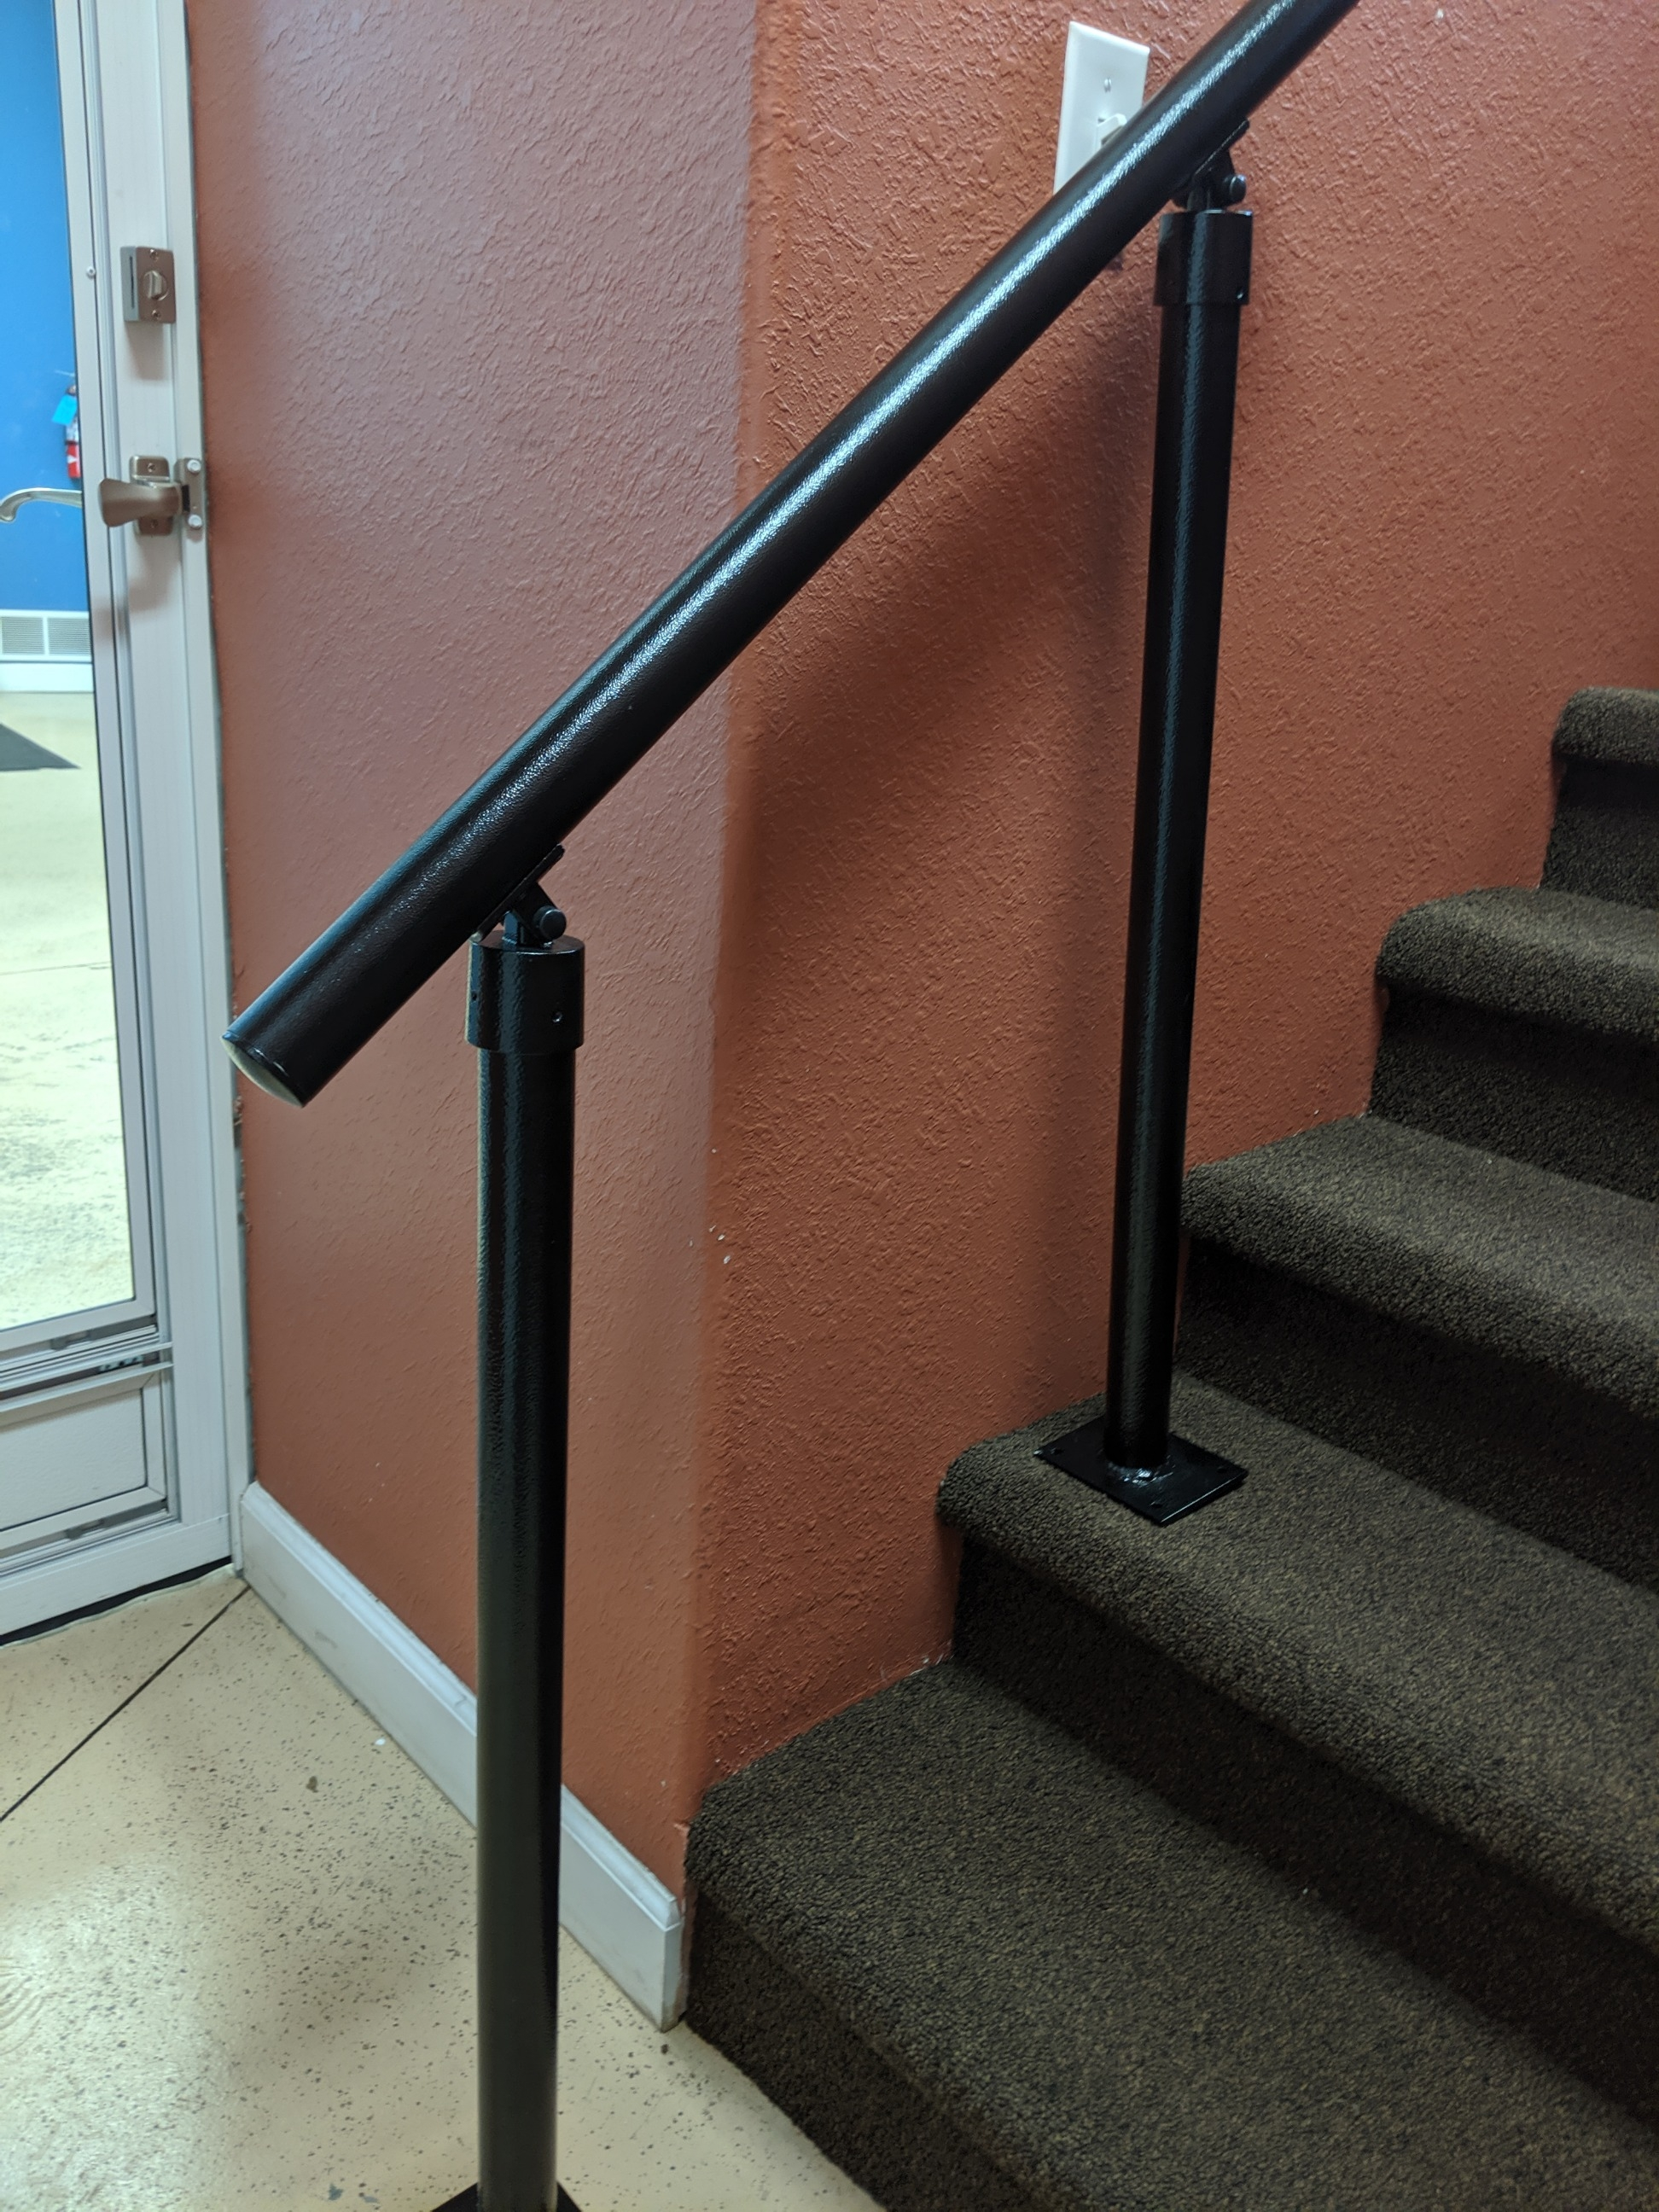 2 And 3 Step Interior Or Exterior Grade Porch Handrail With Posts   Aluminum Steps With Handrail   Boat Dock   Wheelchair Ramp   Stair Treads   Folding   Stair System